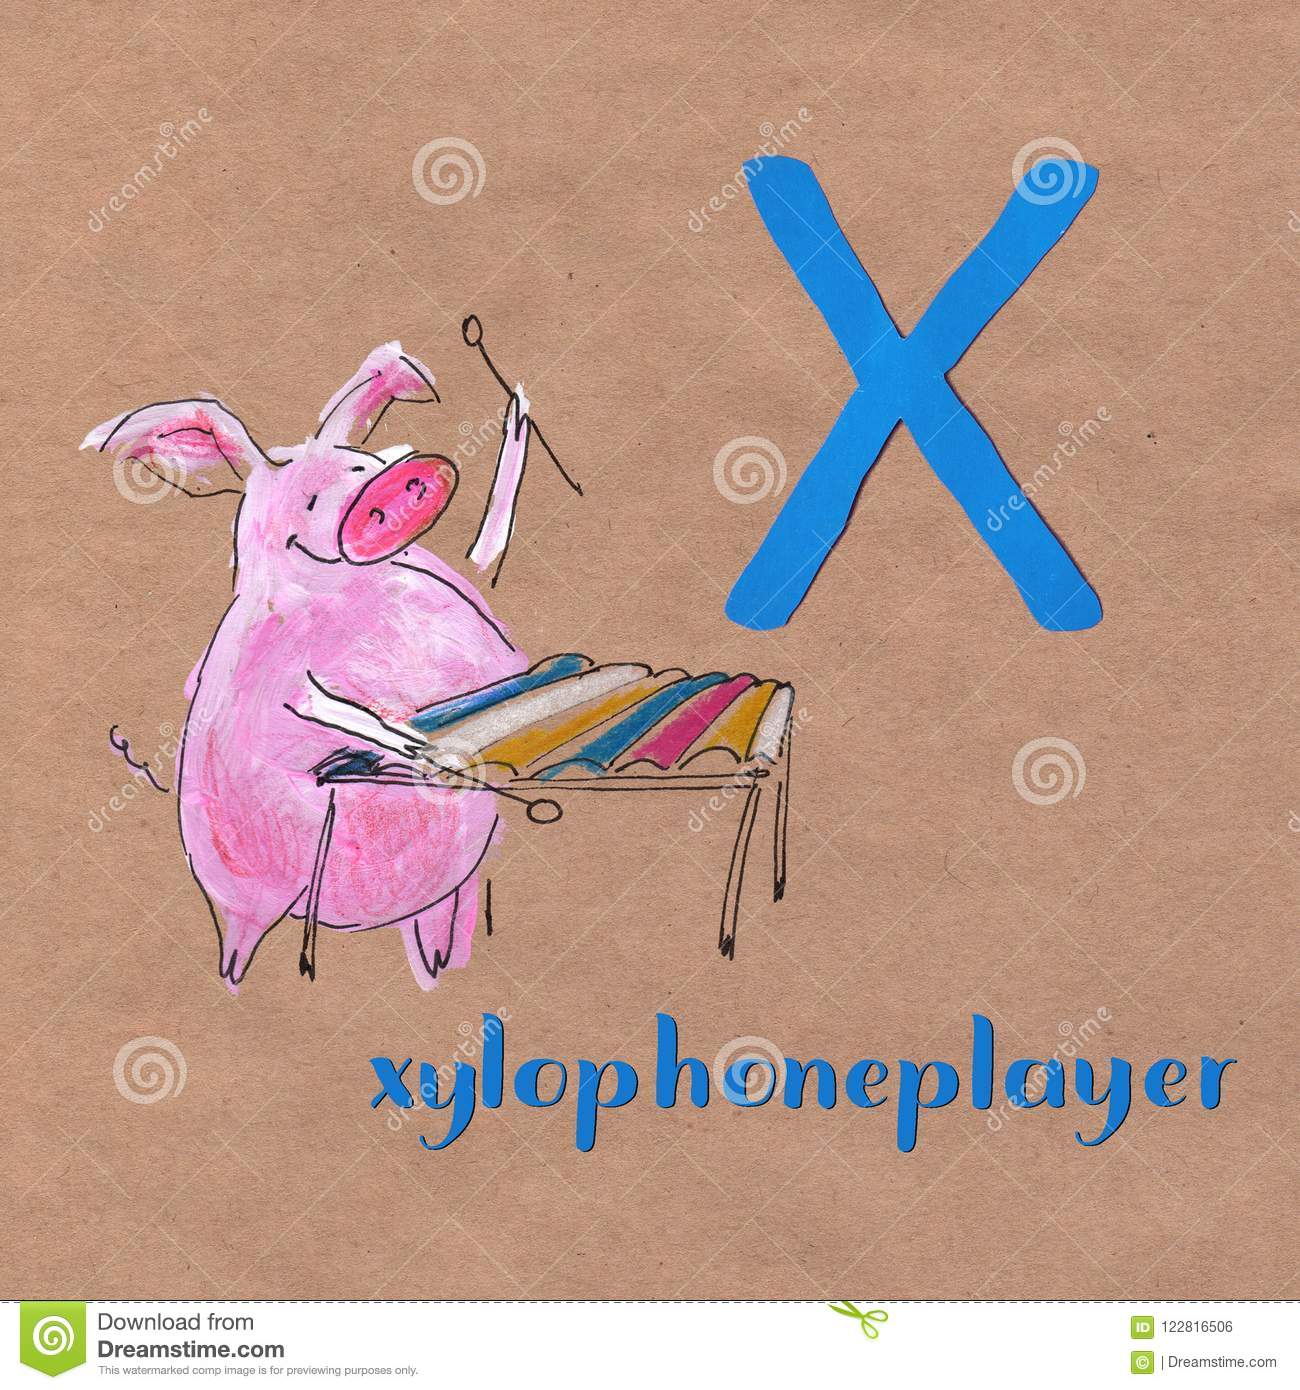 Cartoon X Ray Boy And Xylophone Alphabet Tracing Worksheet Writing A Z And Educational Game